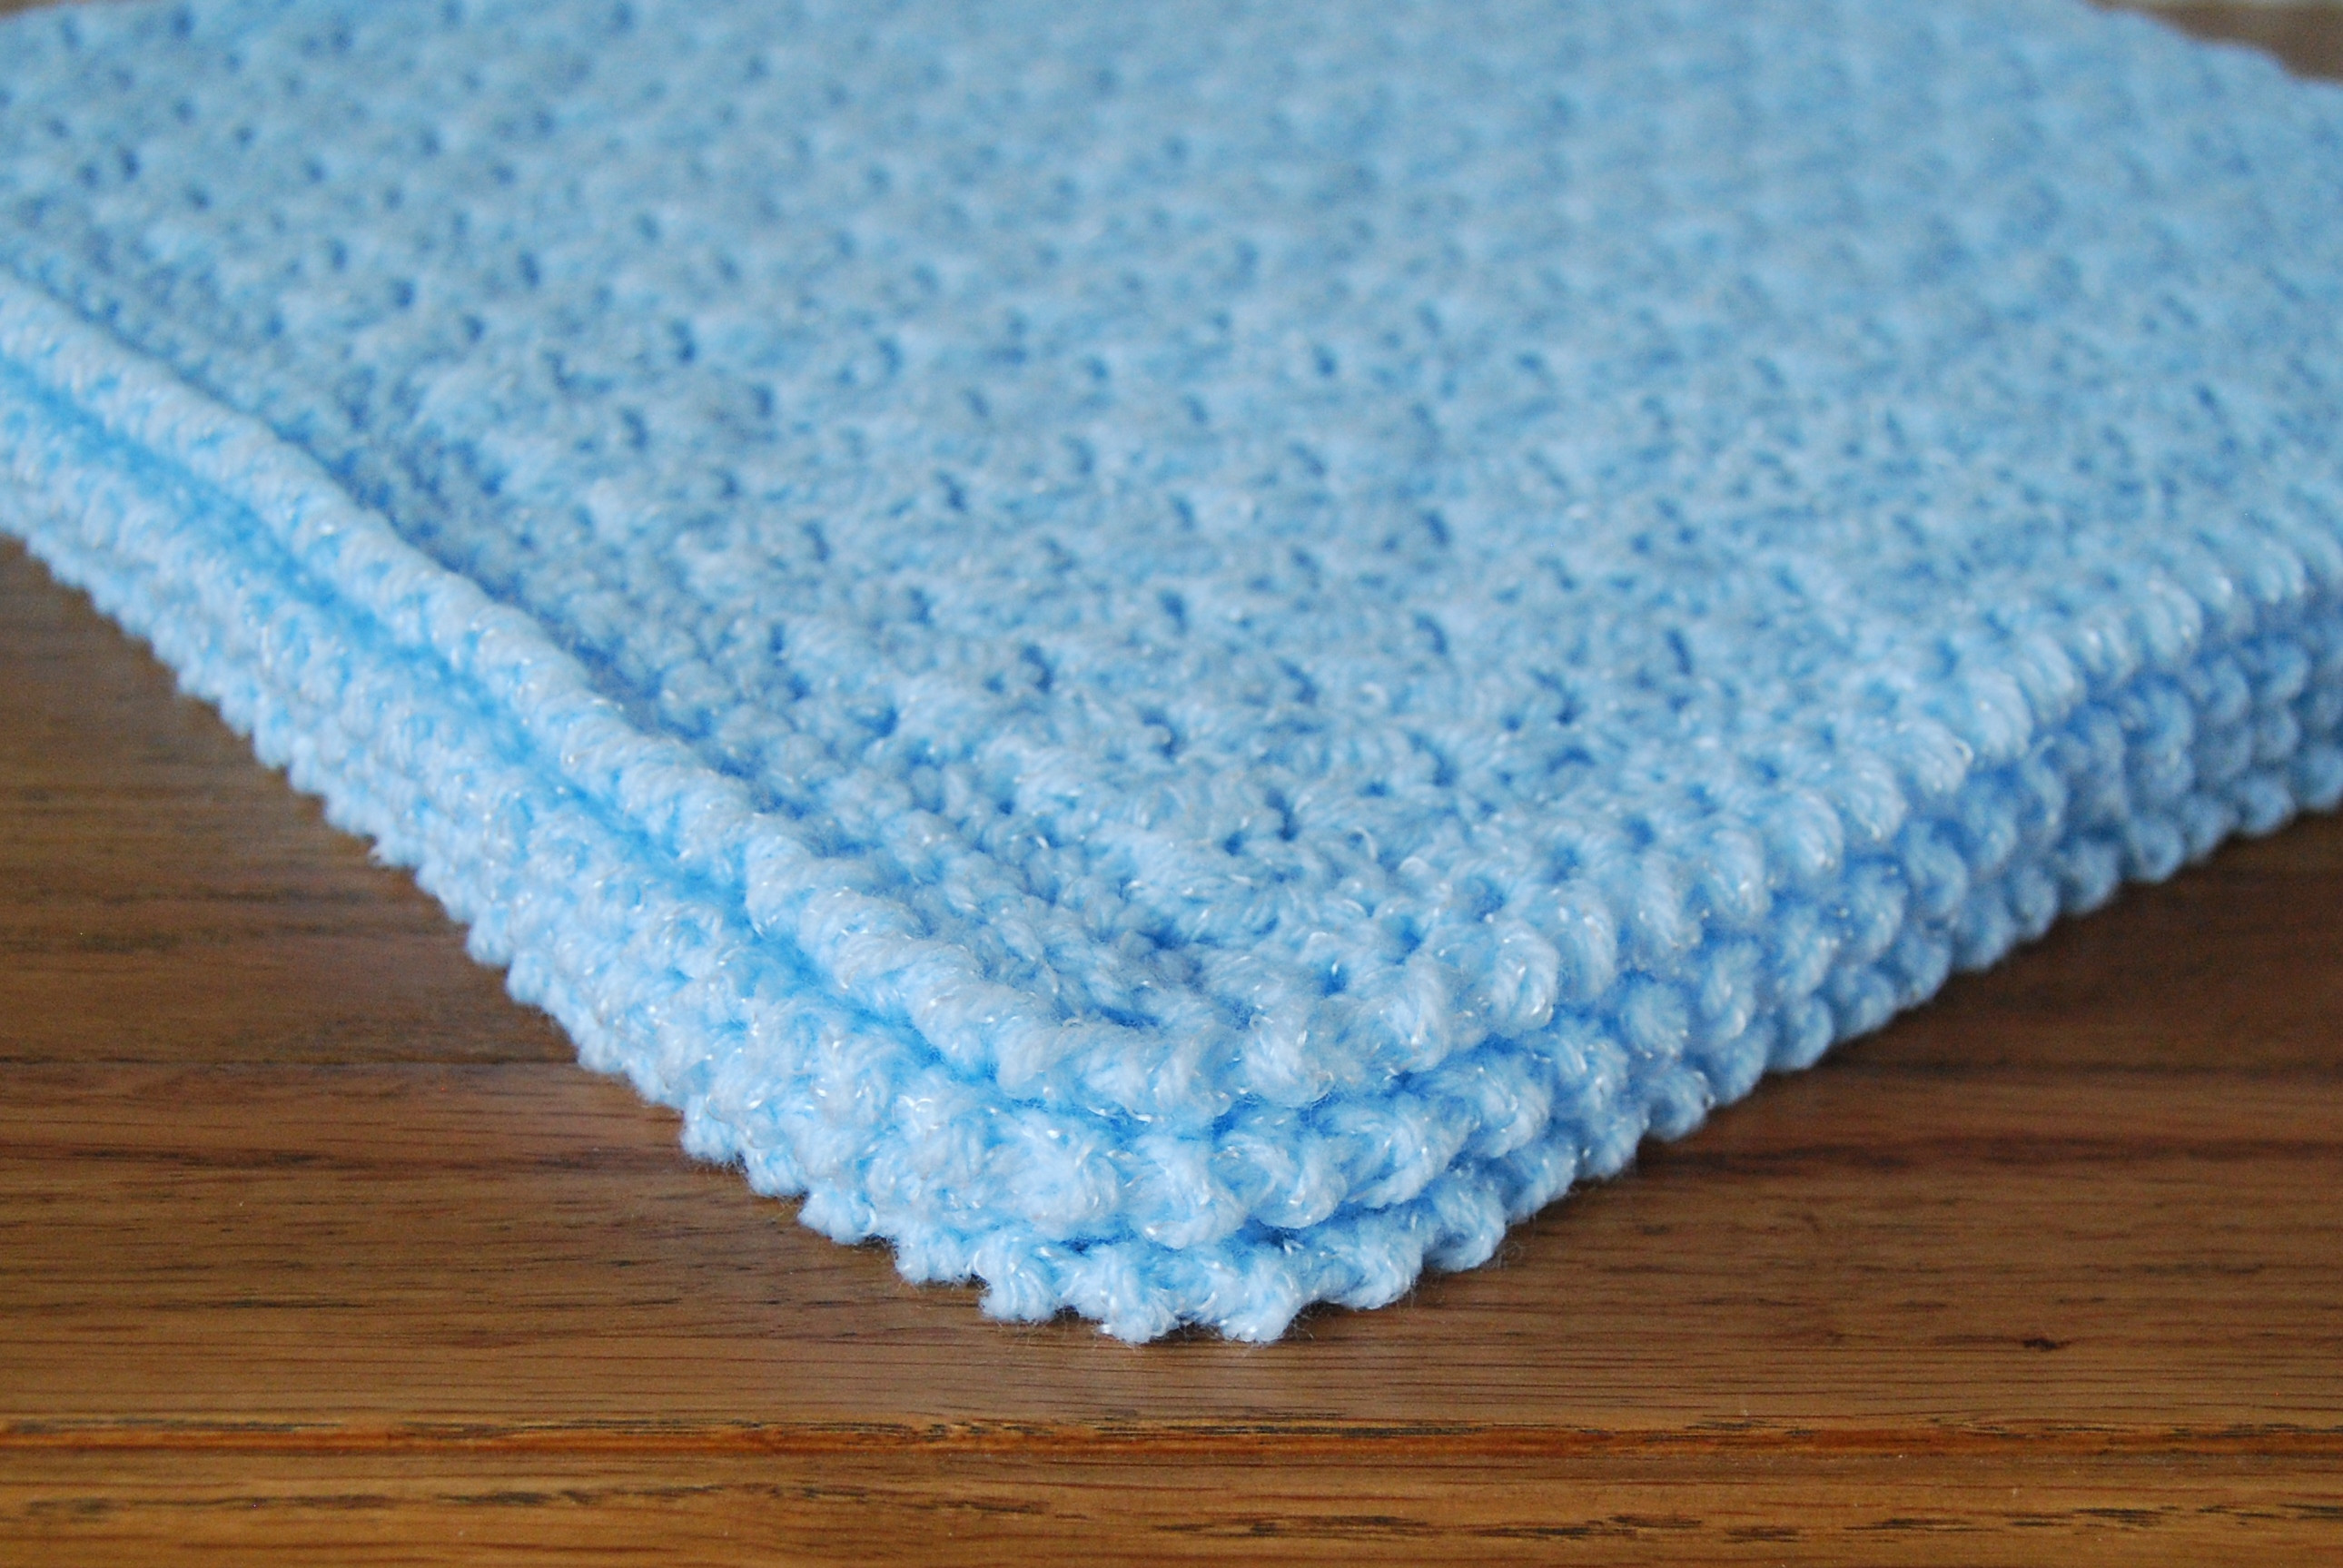 Baby Boy Crochet Blanket Patterns Lovely Beautiful Baby Boy Blanket Crochet Pattern for Pram Of Baby Boy Crochet Blanket Patterns Best Of 10 Beautiful Baby Blanket Free Patterns